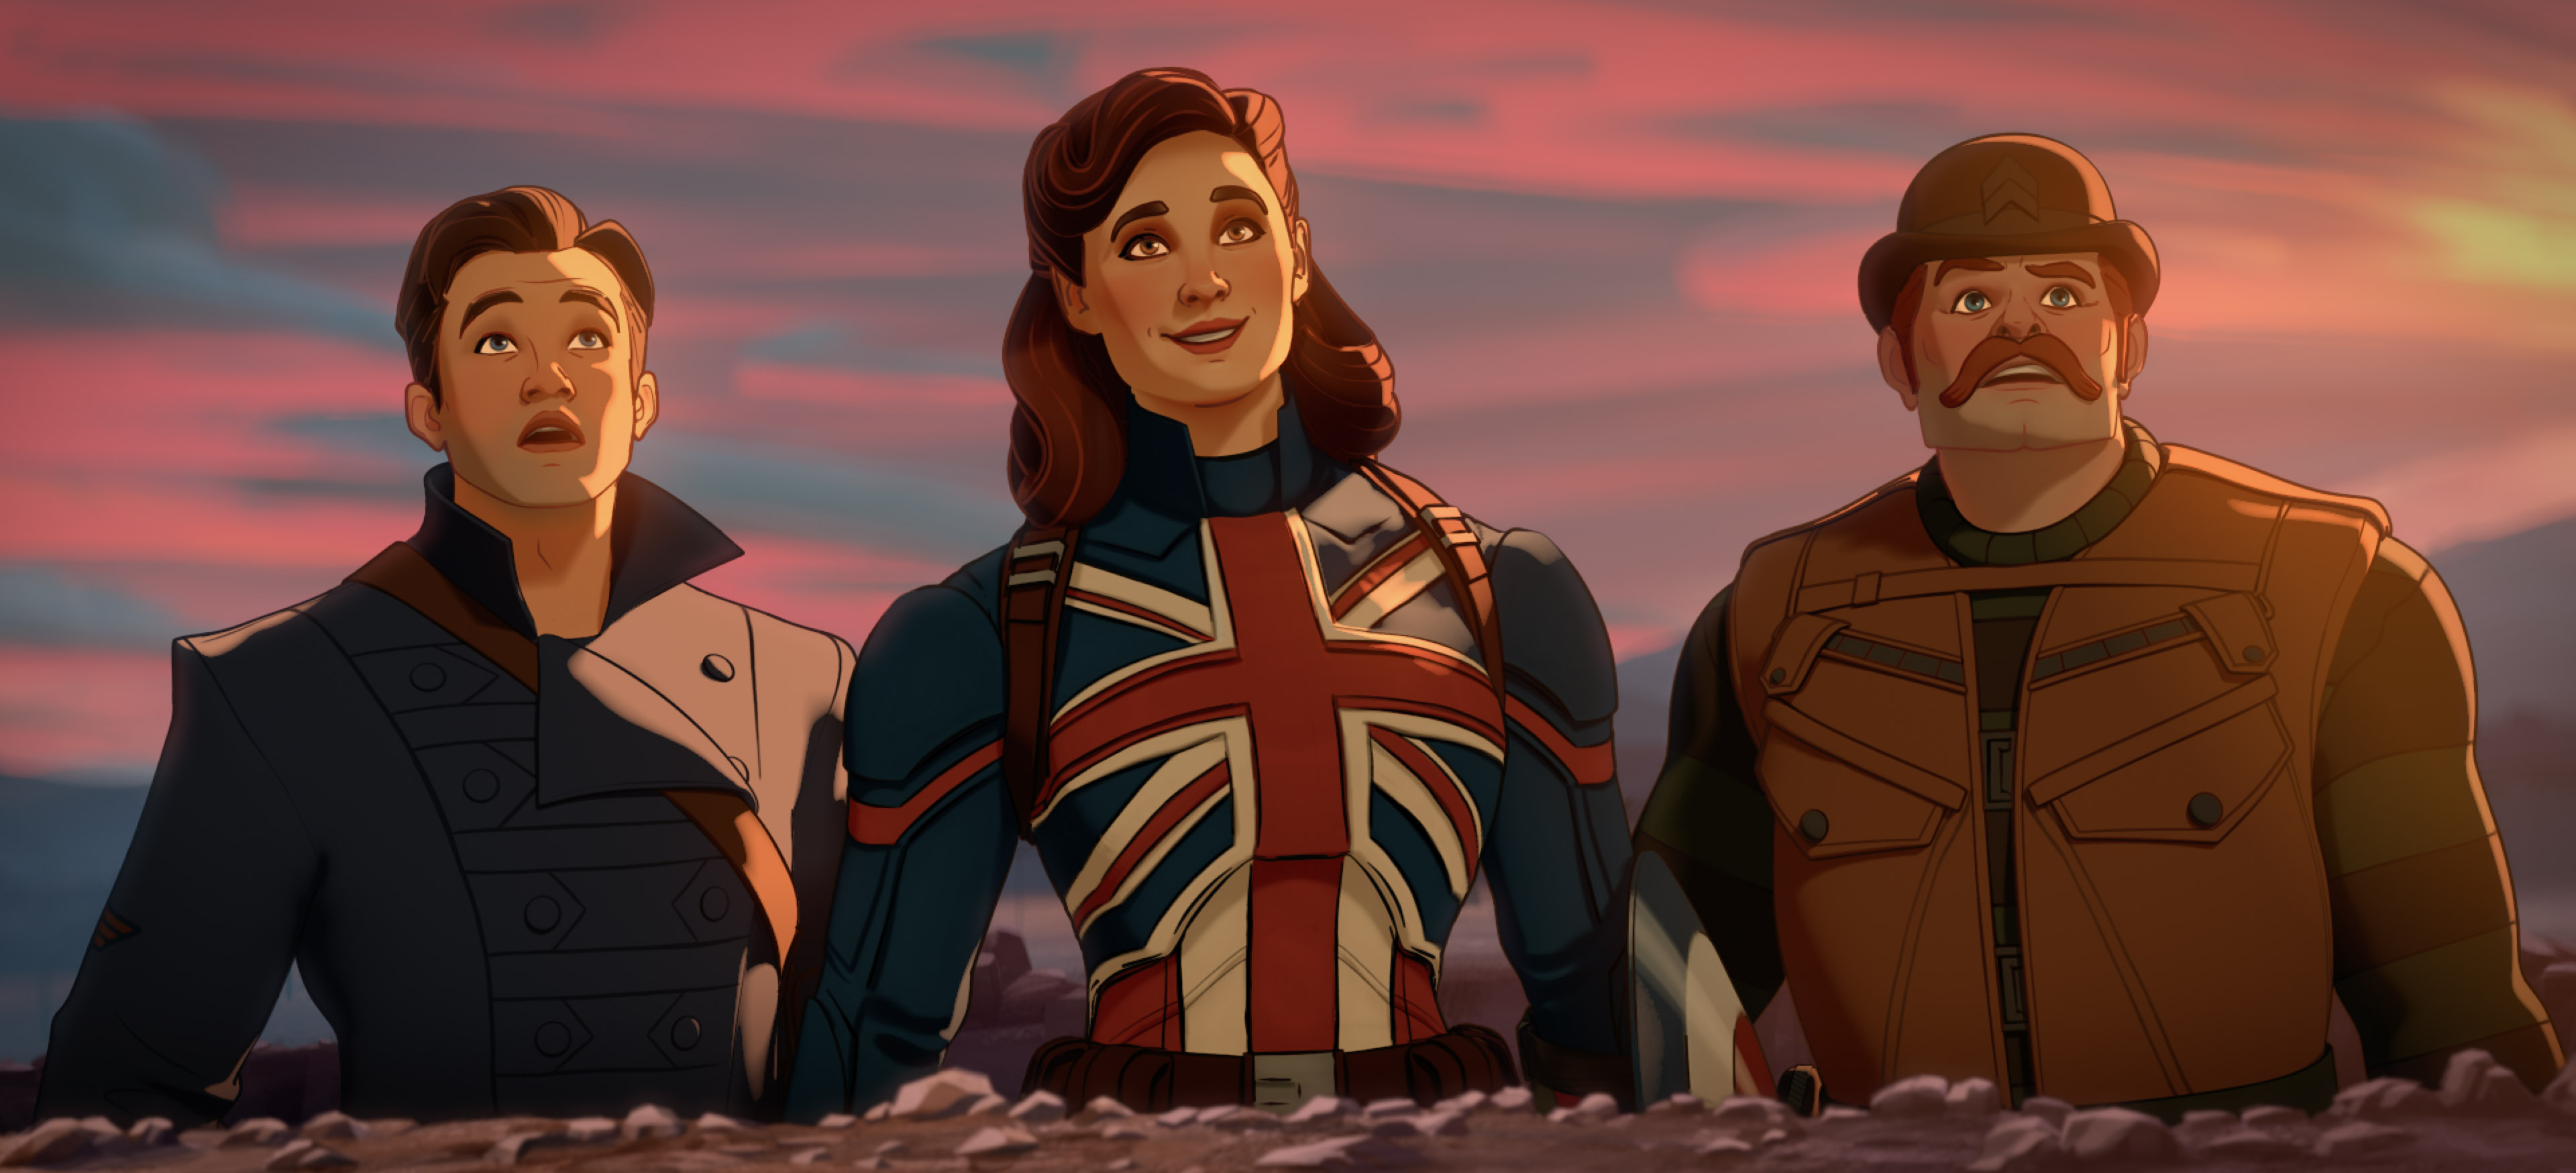 Bucky, Peggy Carter, and Dum Dum Dugan in Marvel's What If...? episode 1.